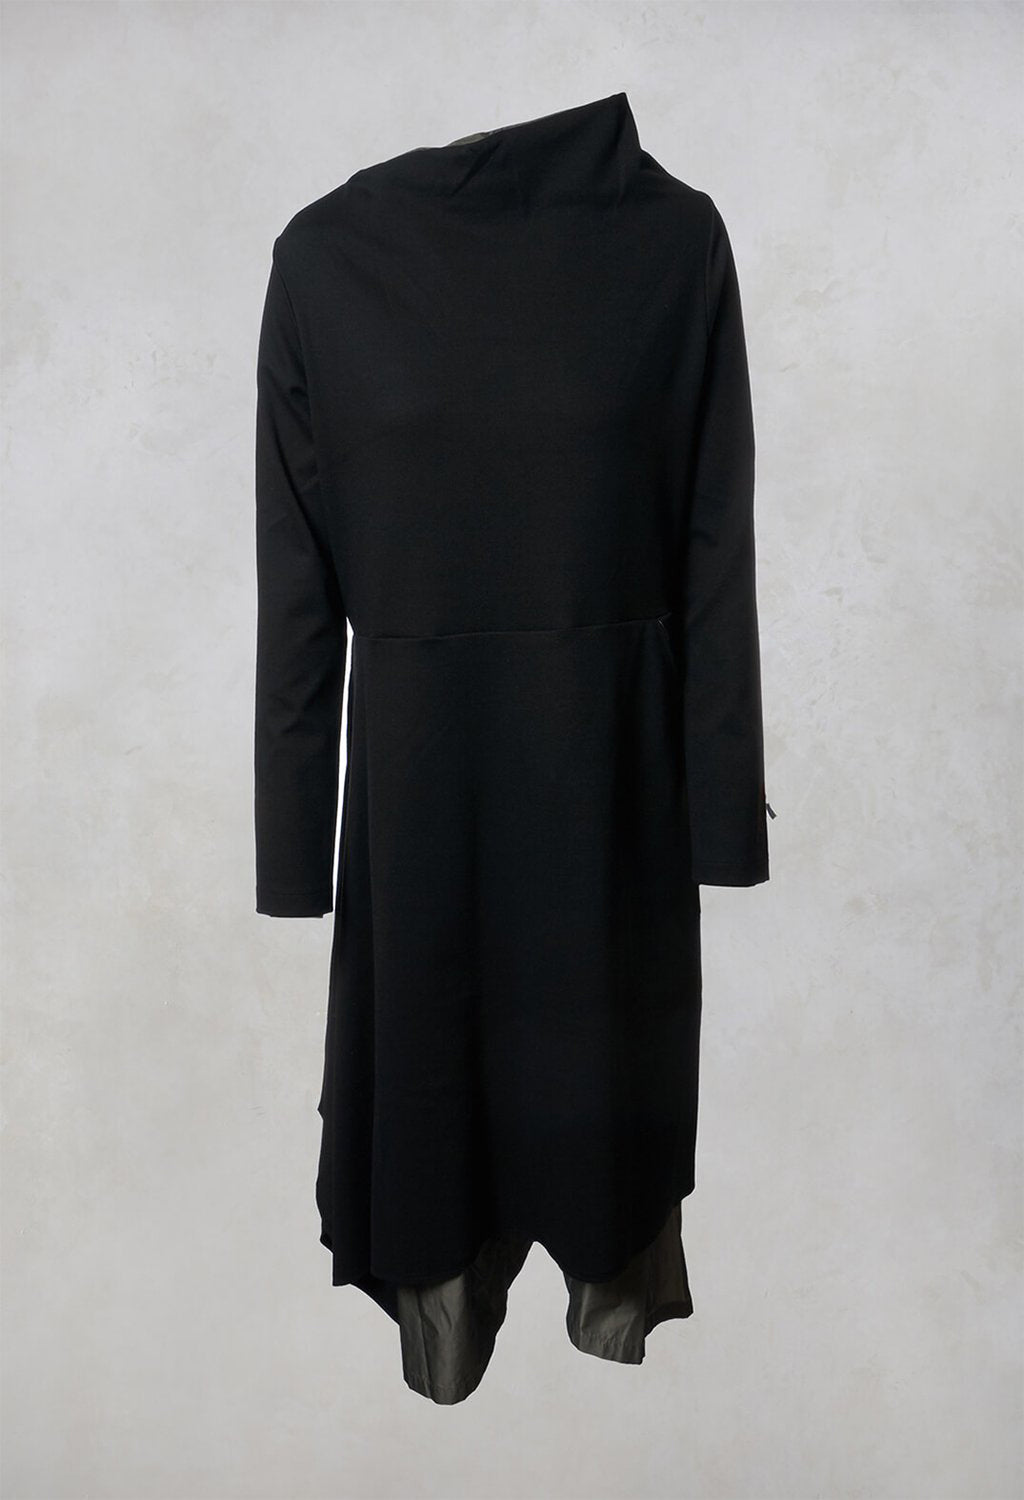 A Line Dress in Black / Olive